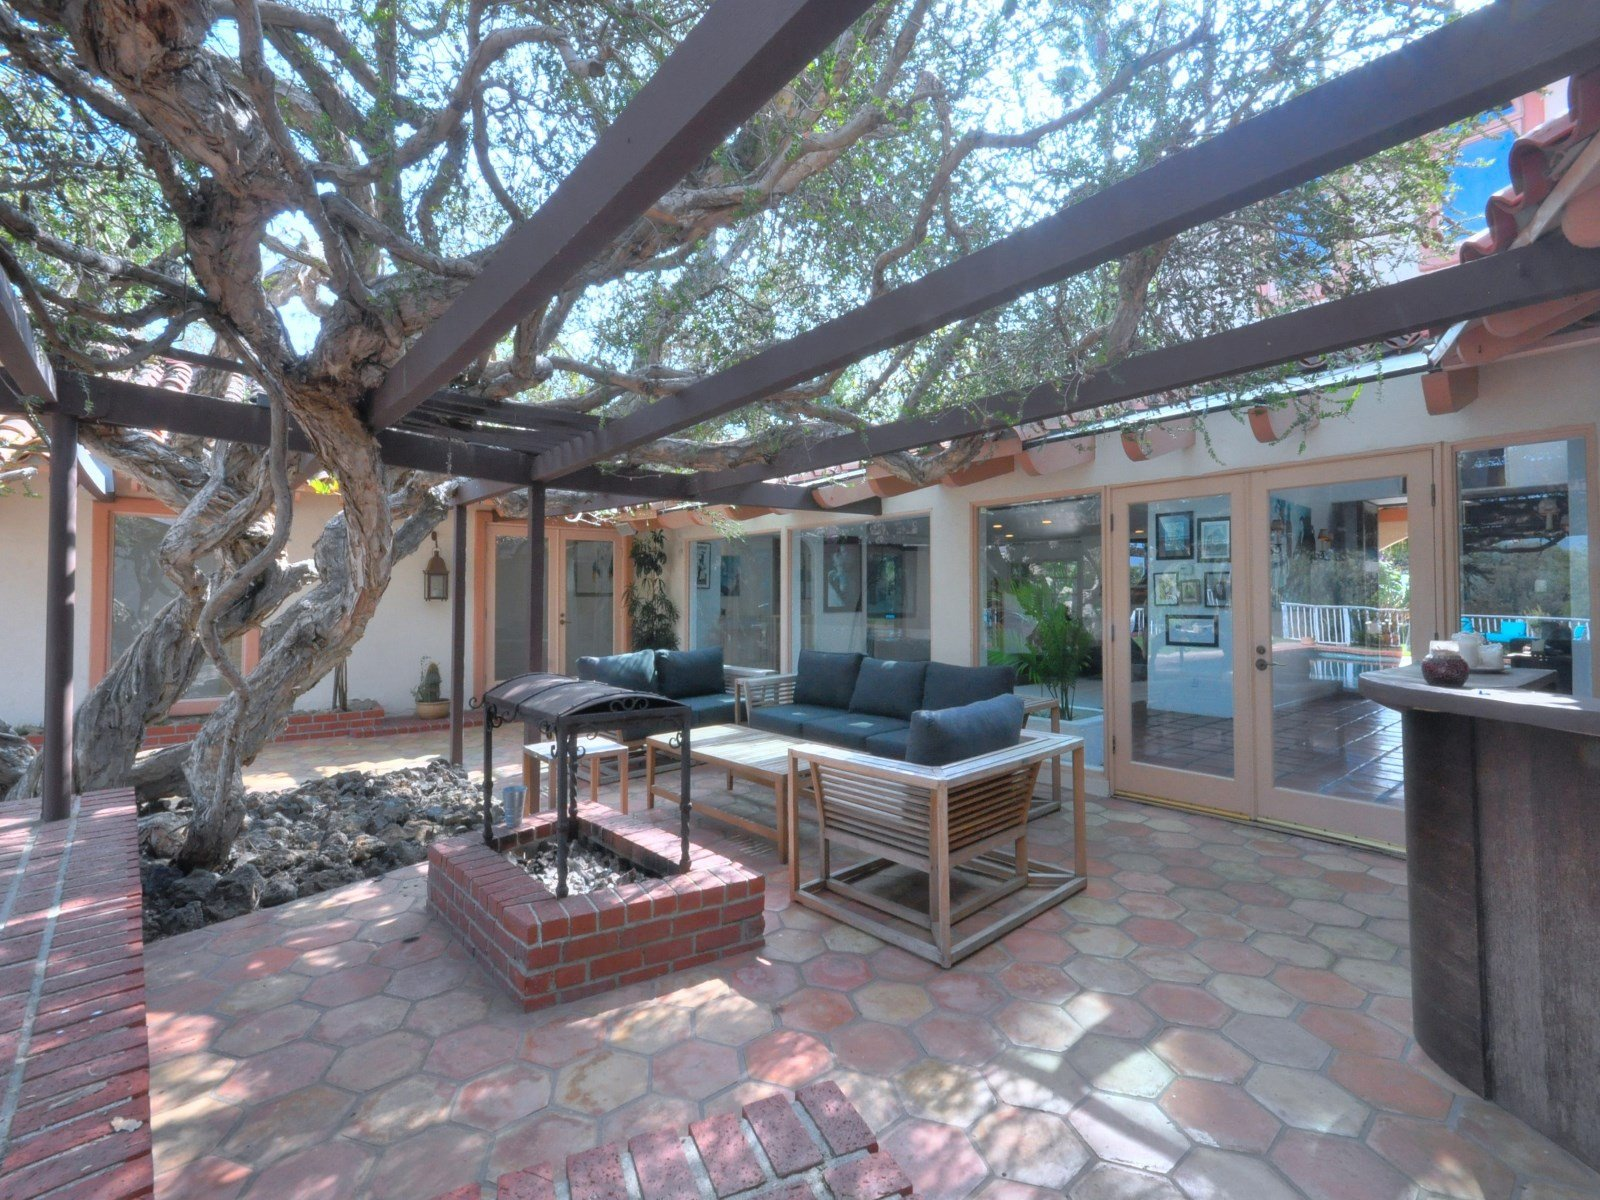 Patio - Entertaining area Sean Penn house for sale